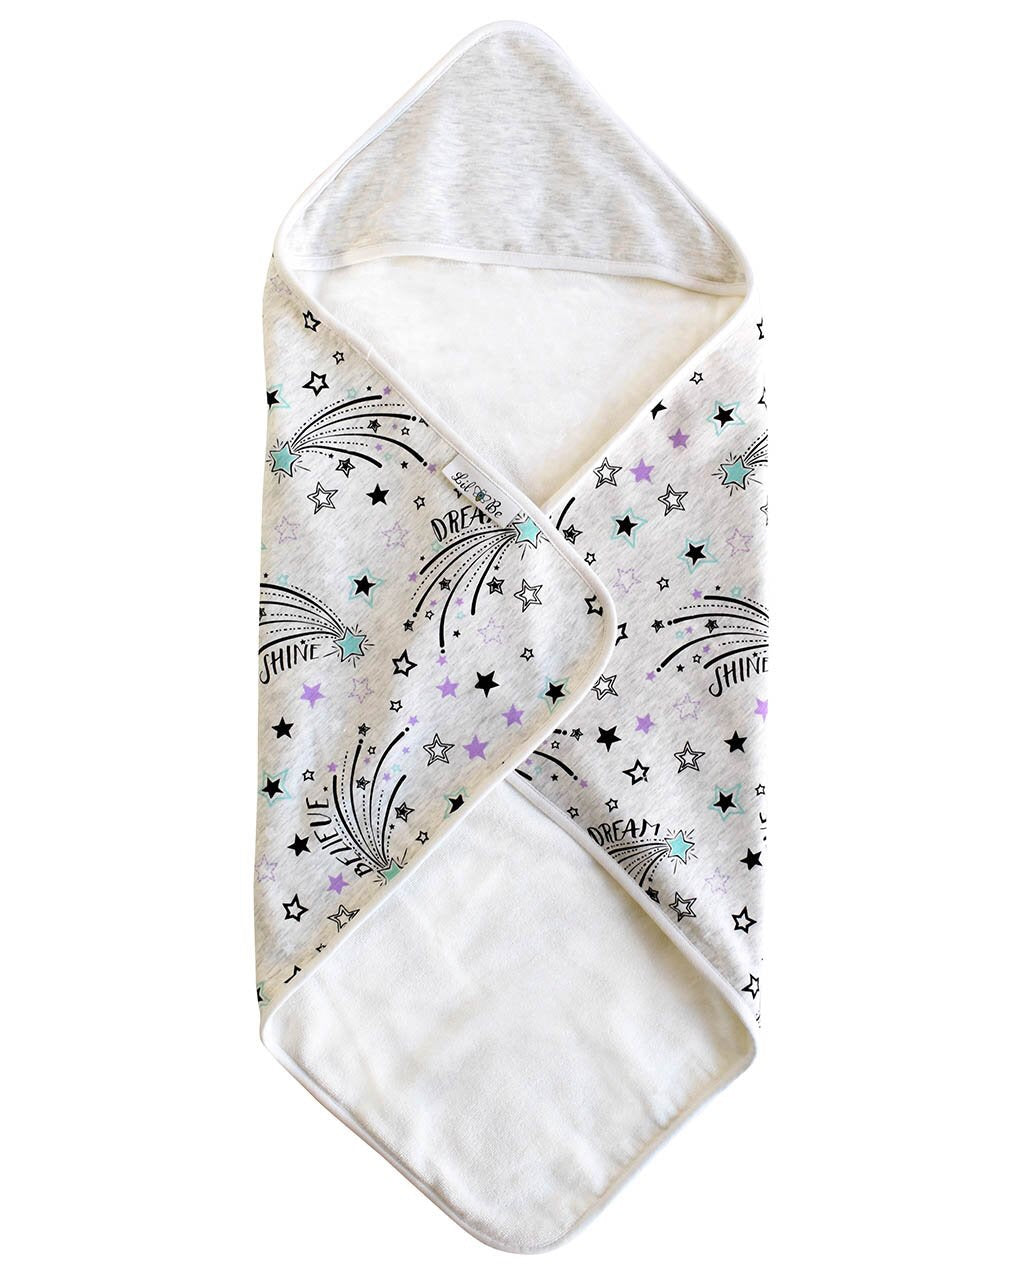 Lil Be Shooting Star Hooded Towel - Le Bébé Chic Boutique